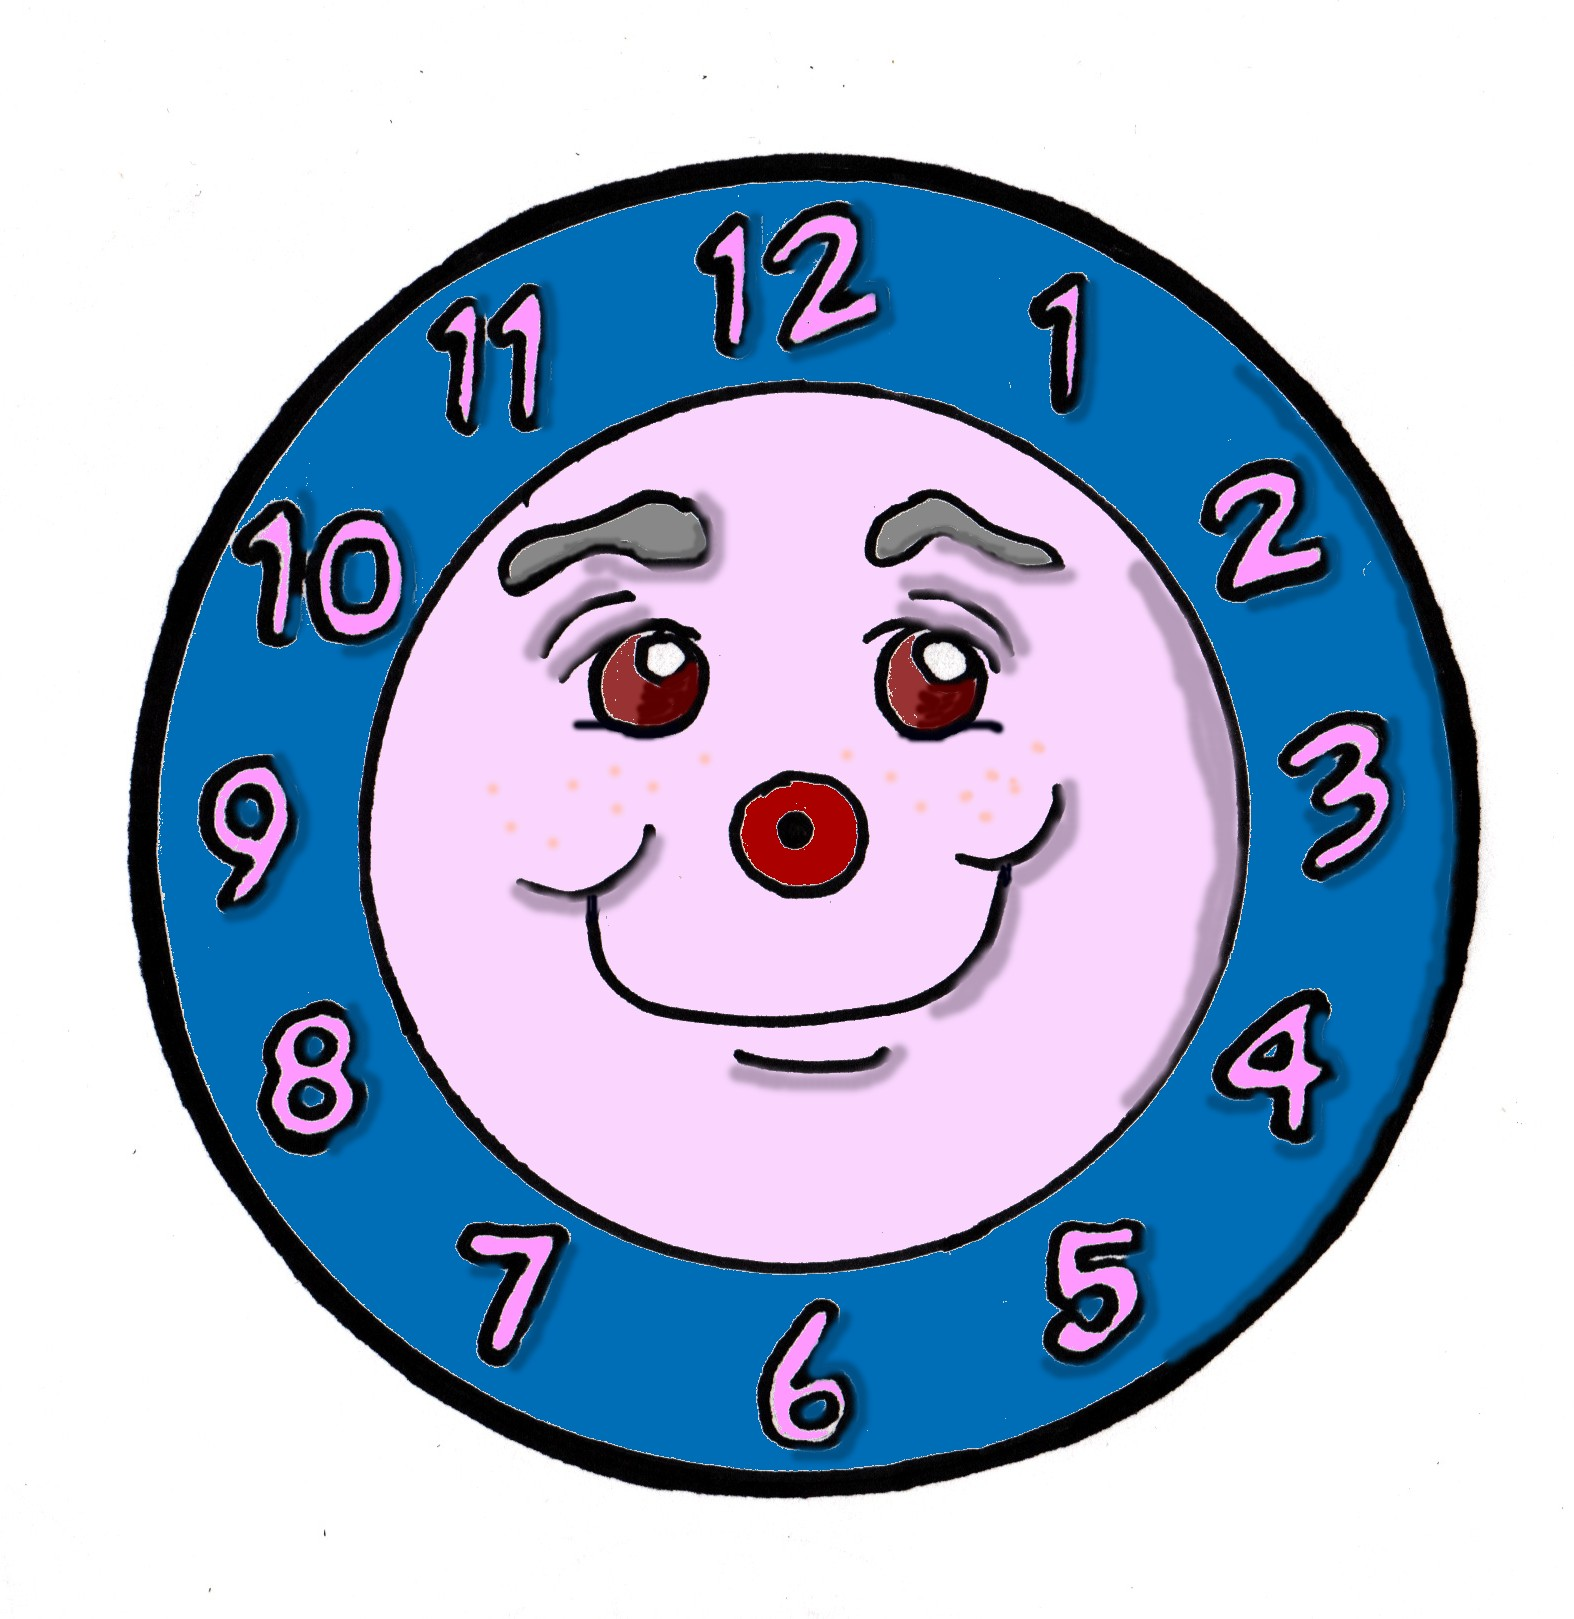 Cute animal clock clipart - ClipartFest png free download